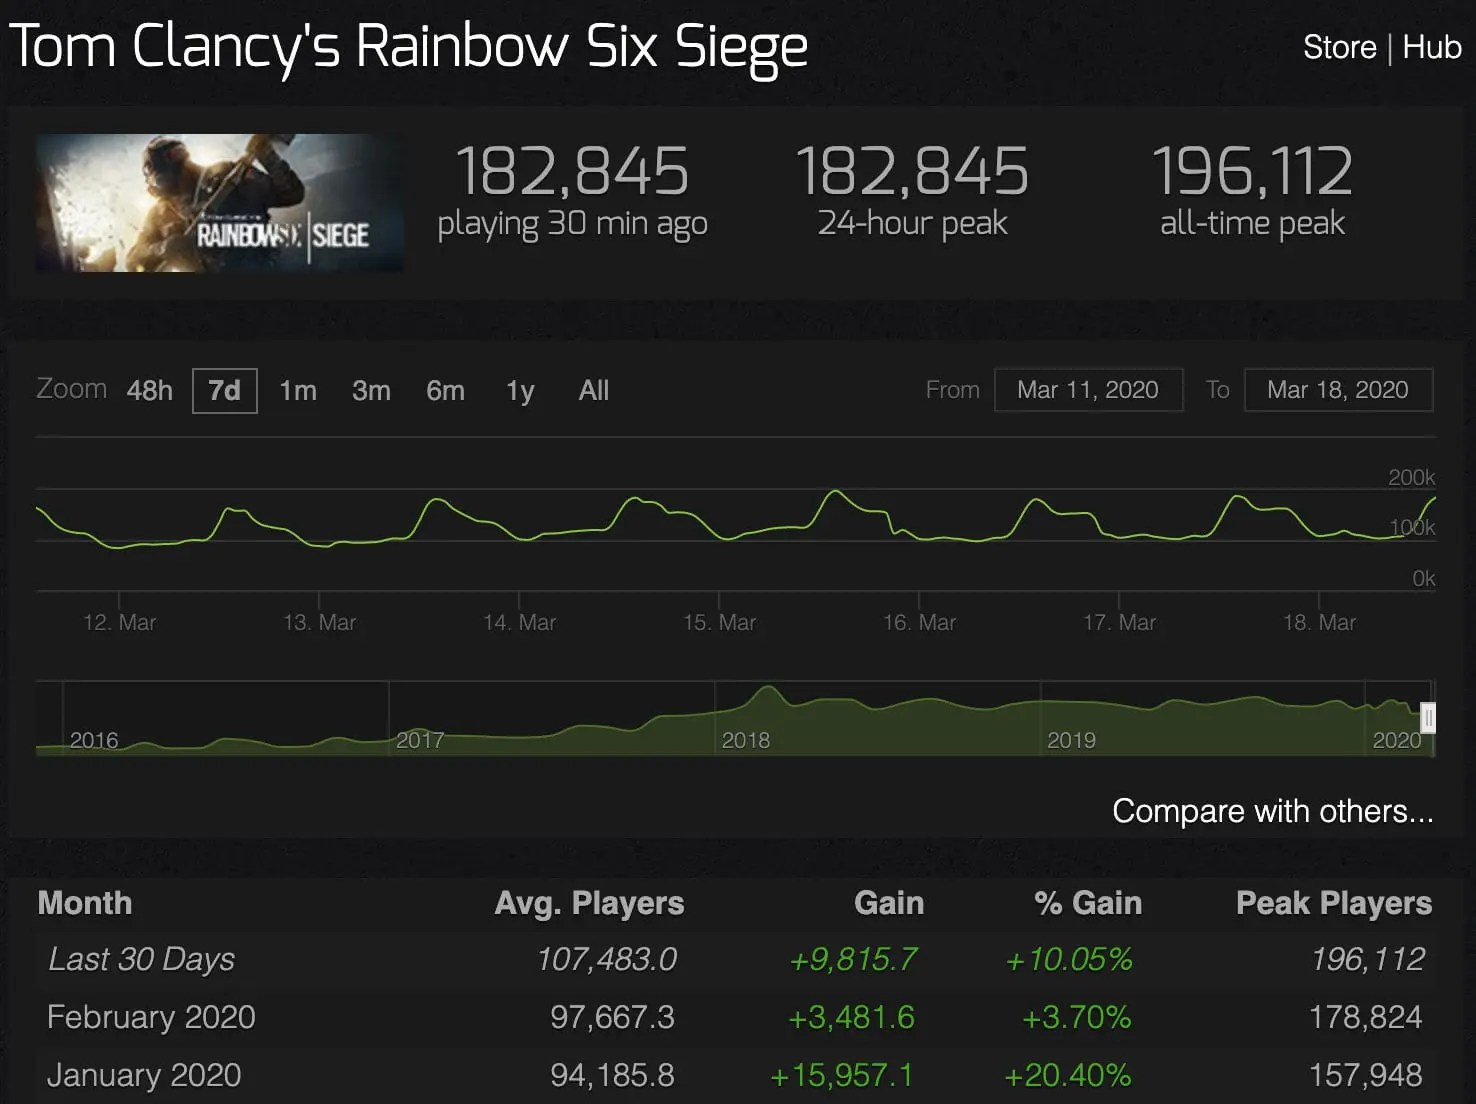 A graph showing the rise in people playing Tom Clancy's Rainbow Six Siege